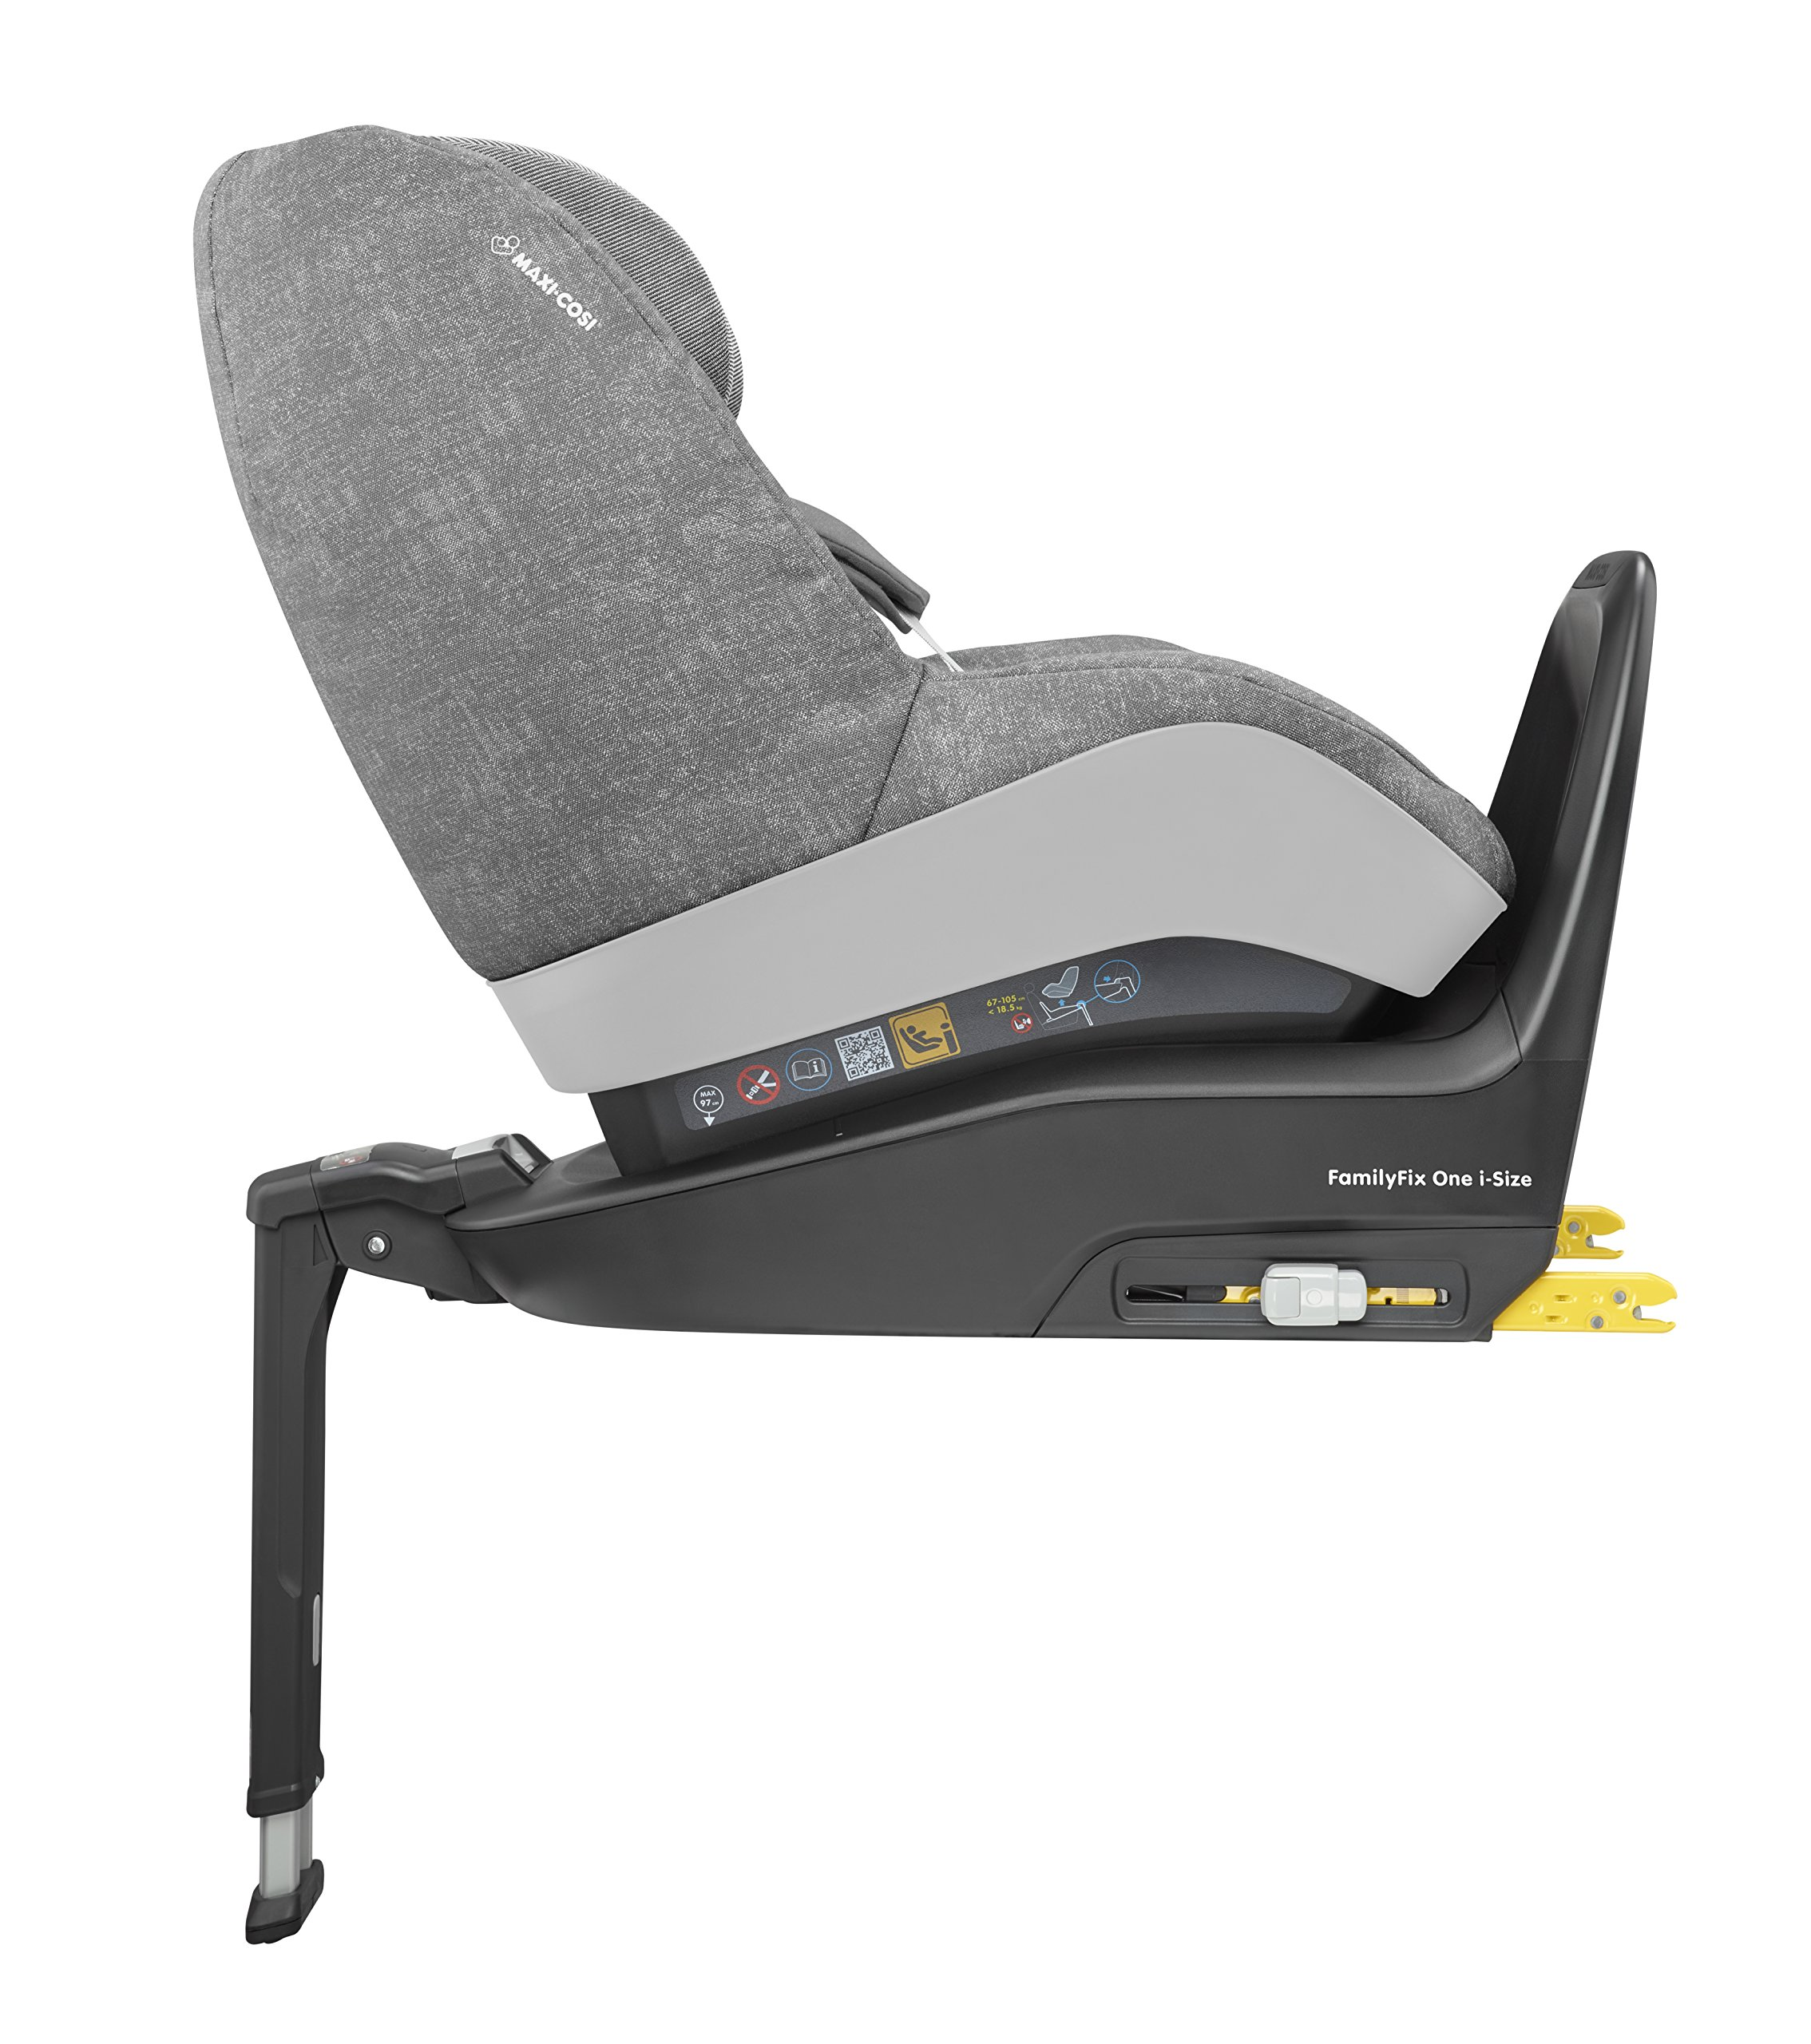 Maxi-Cosi Pearl One i-Size Toddler Car Seat Group 1, Rear-Facing Car Seat, ISOFIX, 67-105 cm, 6 Months-4 Years, Nomad Grey Maxi-Cosi Must be used with the maxi-cosi family fix one i-size base Approved according to the latest european safety standard i-size (r129) Innovative stay open harness to easily get the child in and out in seconds 4